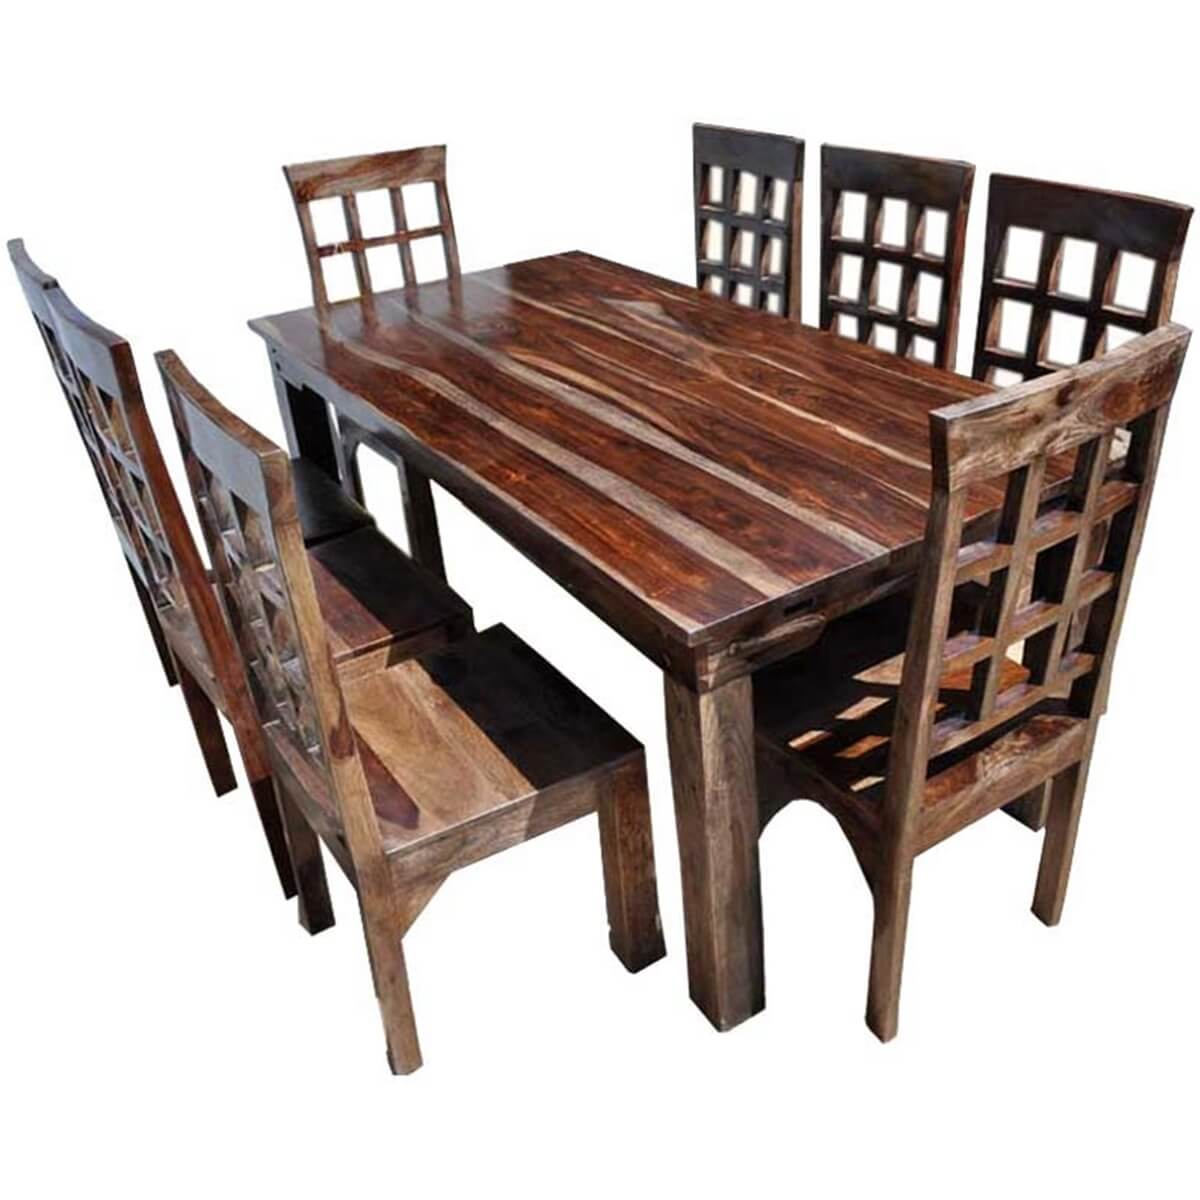 Rustic Dining Chairs Portland Rustic Furniture Extendable Dining Room Table